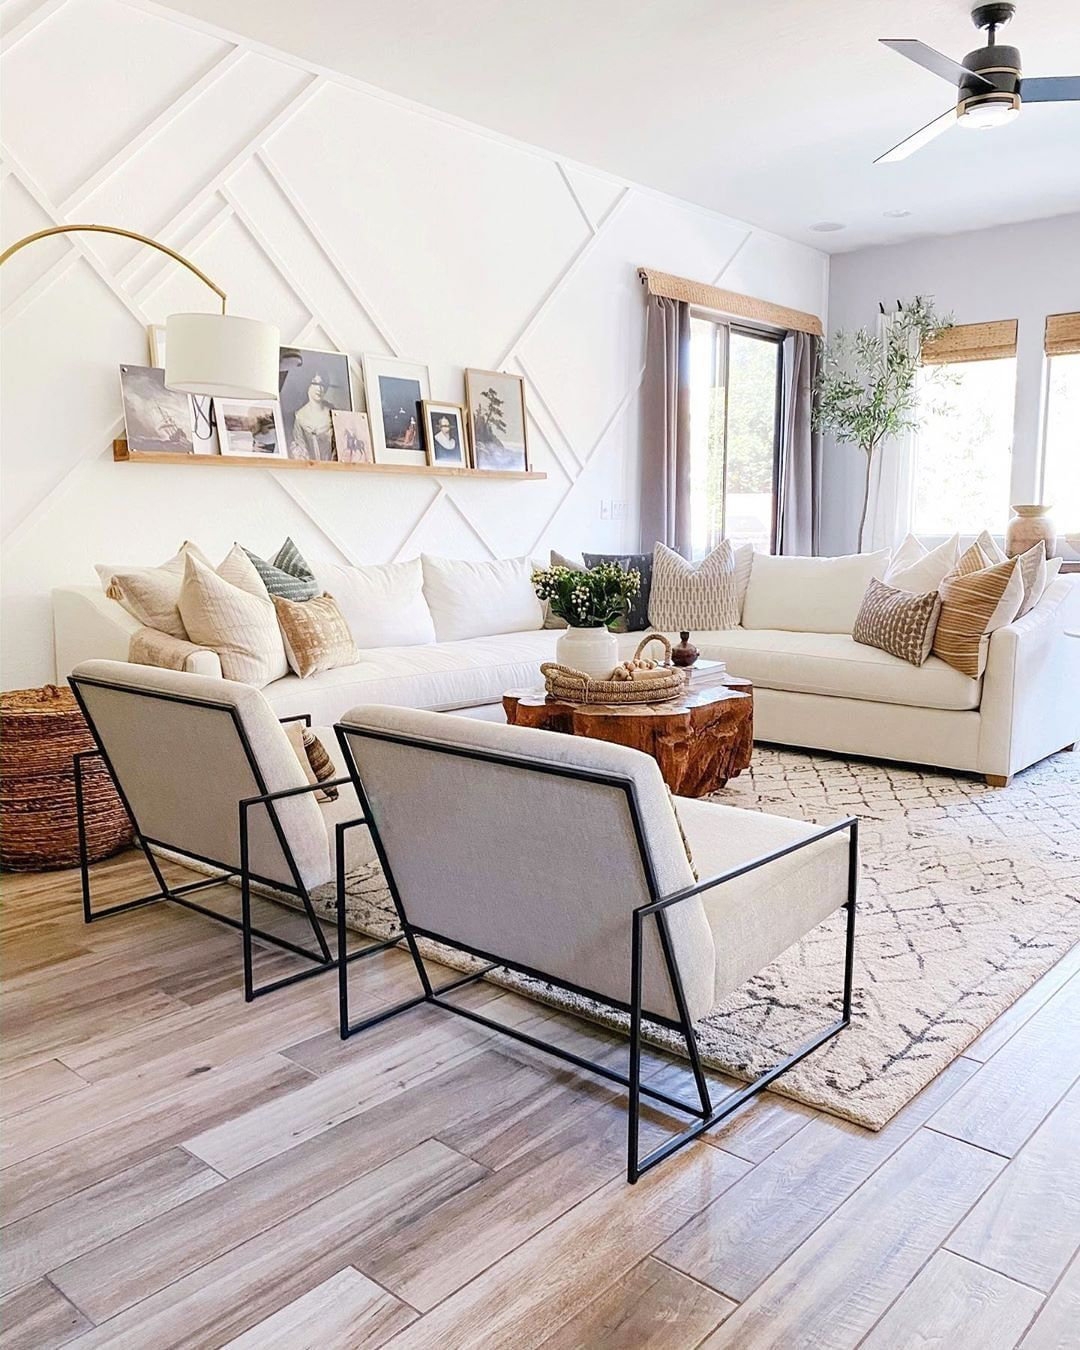 17 Best Home Decor Ideas For Living Room On A Budget Fresh Living Room Living Room Decor Living Room On A Budget